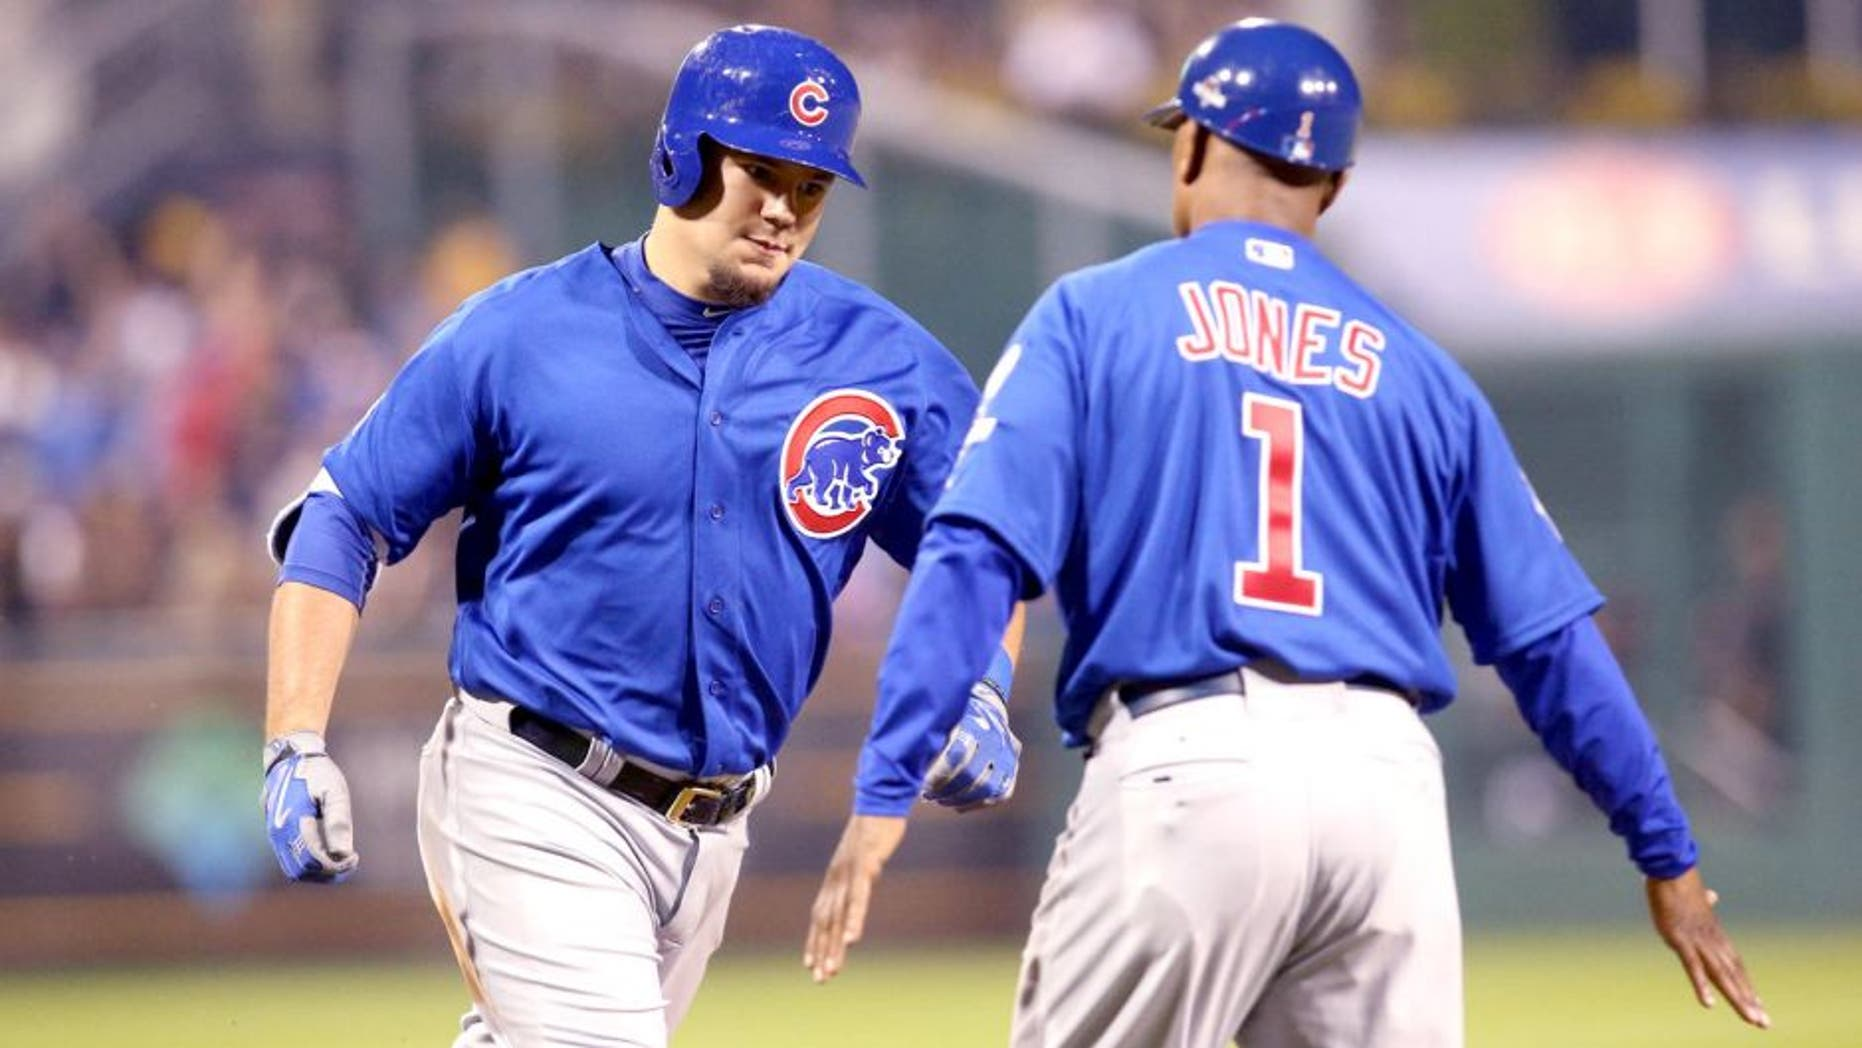 Oct 7, 2015; Pittsburgh, PA, USA; Chicago Cubs right fielder Kyle Schwarber (12) high fives third base coach Gary Jones (1) after hitting a two-run home run against the Pittsburgh Pirates during the third inning in the National League Wild Card playoff baseball game at PNC Park. Mandatory Credit: Charles LeClaire-USA TODAY Sports